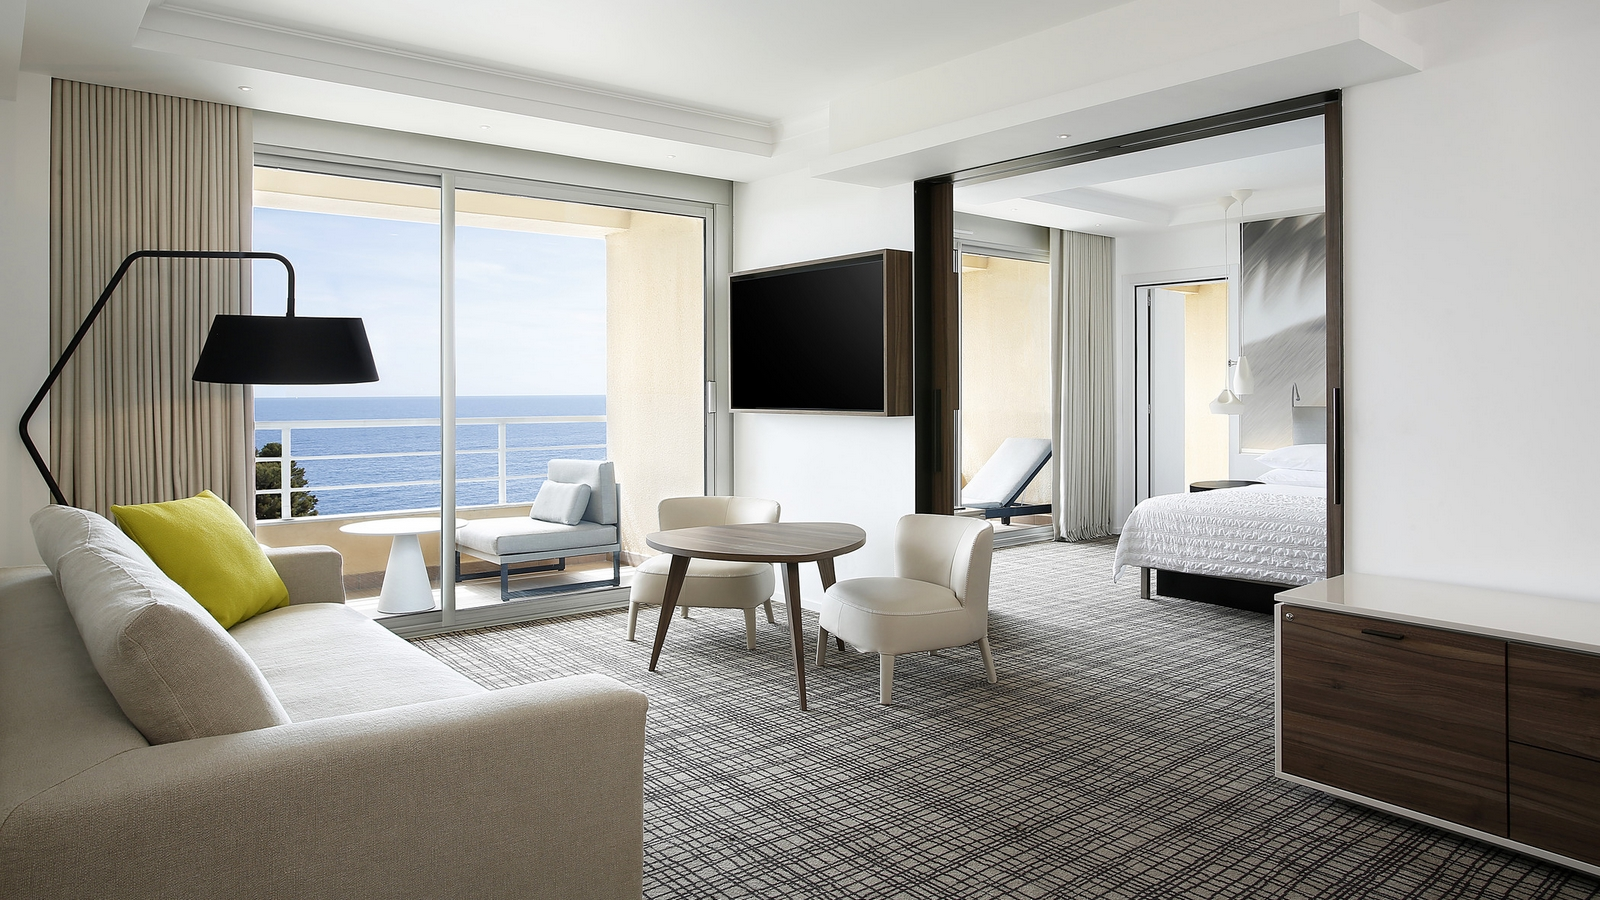 Executive Suite in Le Meridien Beach Plaza